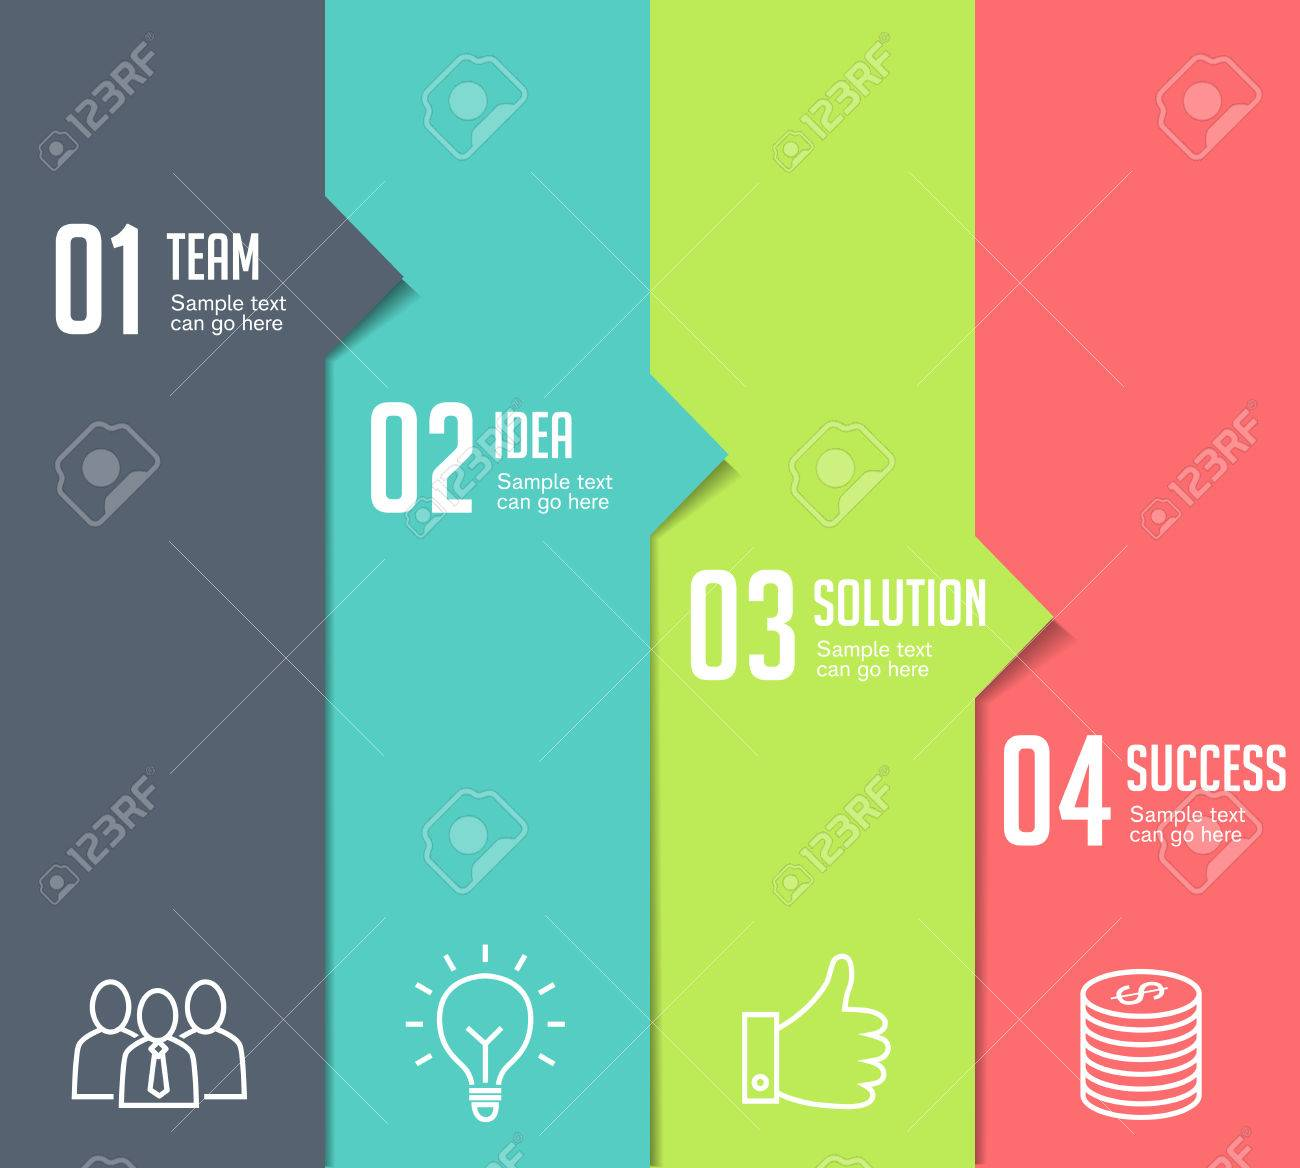 Four steps infographics - can illustrate a strategy, workflow or team work. - 50453710